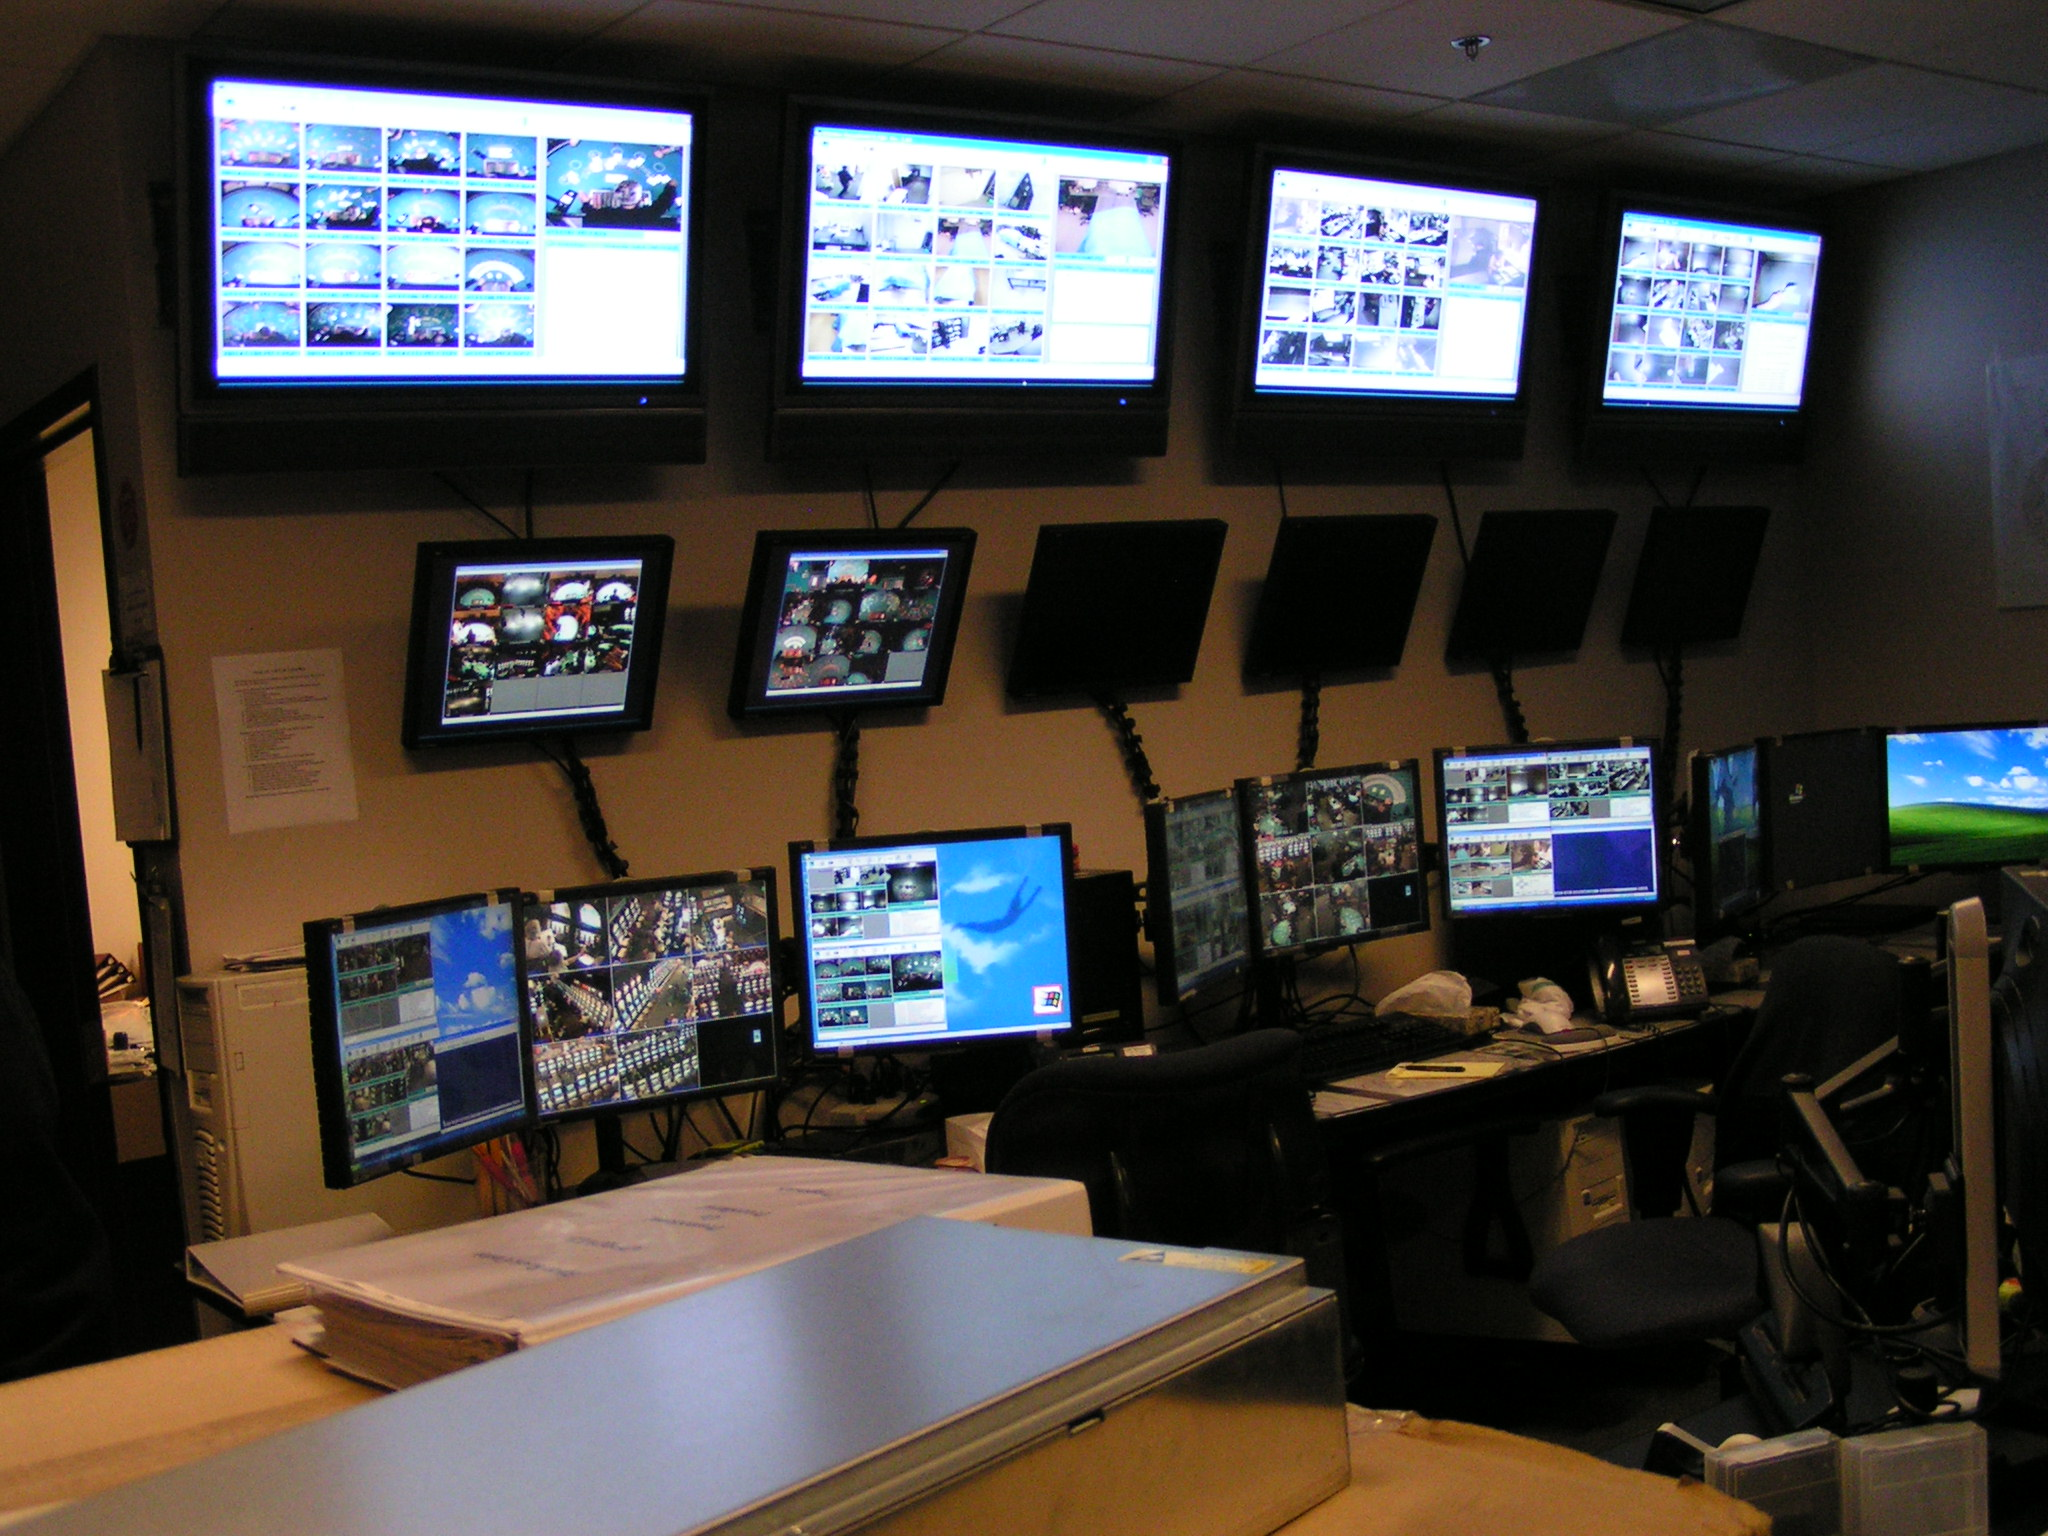 Police Officer Wallpaper Hd Monitoring Benefits From Cctv Surveillance For The Work